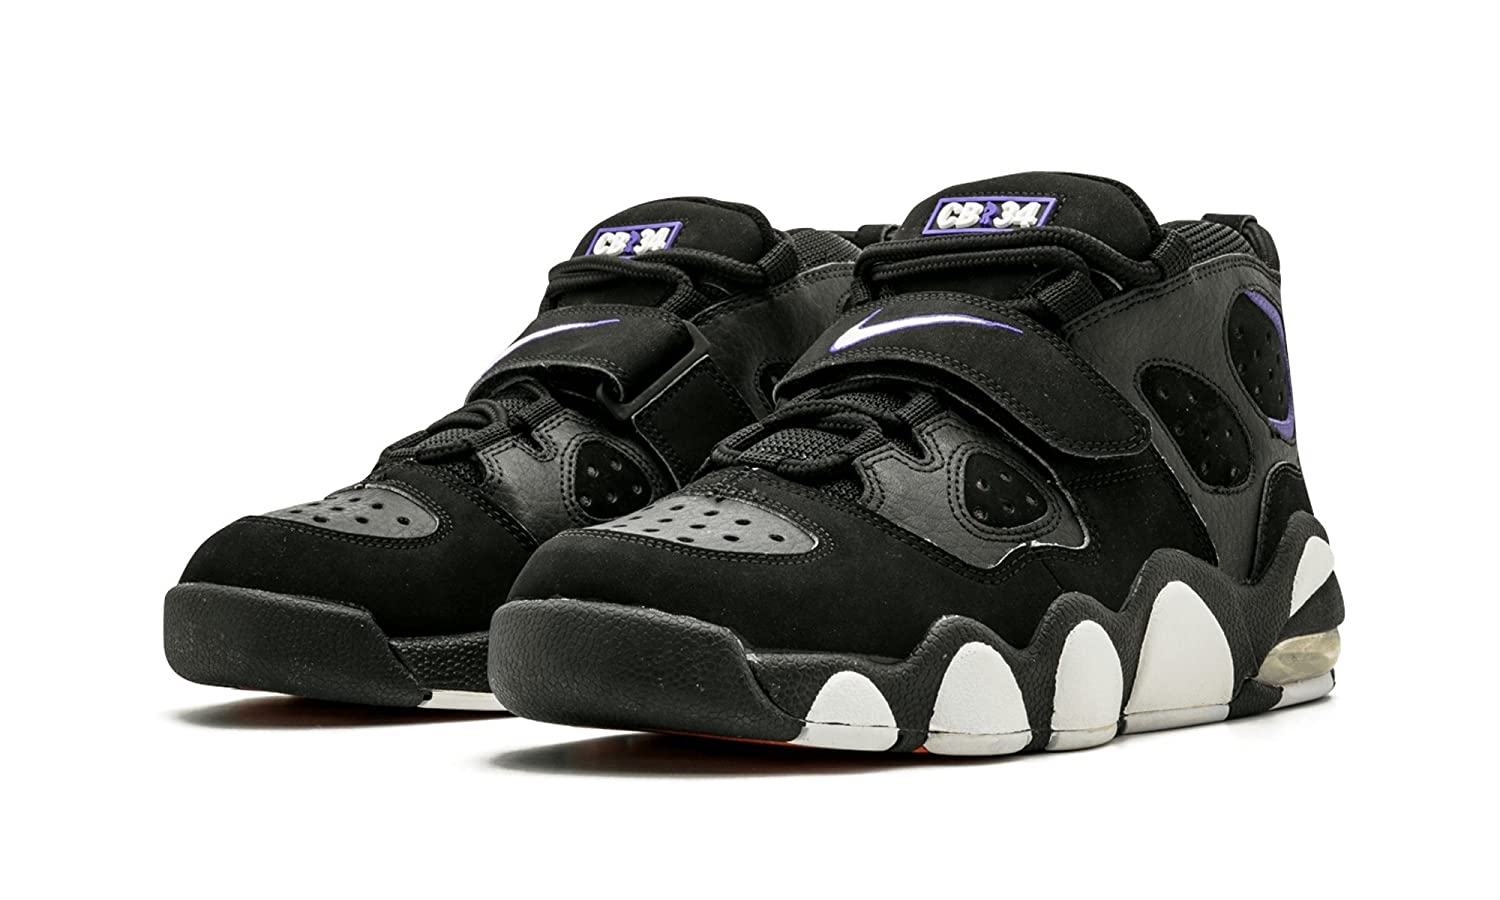 Nike Air Cb 34 In Stock - Musée des impressionnismes Giverny 73c6c33bcd707